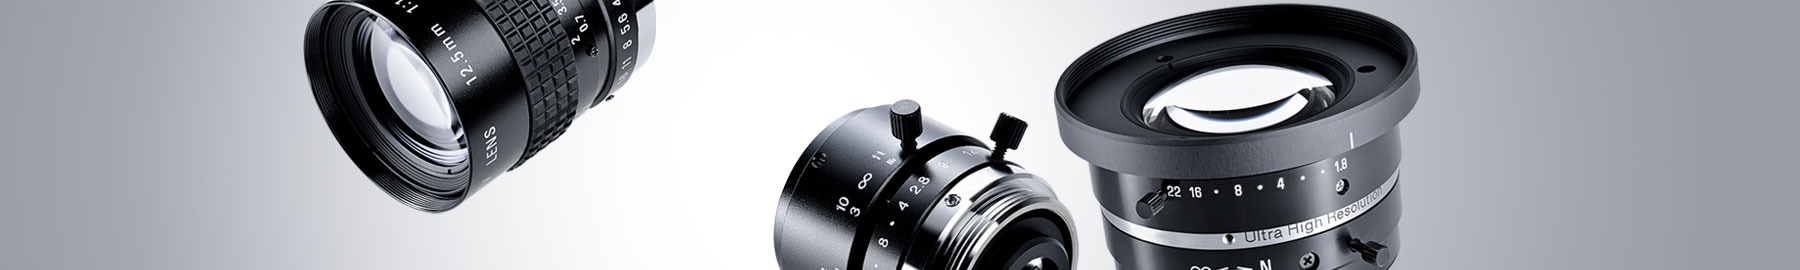 Machine Vision Lenses and Optics - STEMMER IMAGING